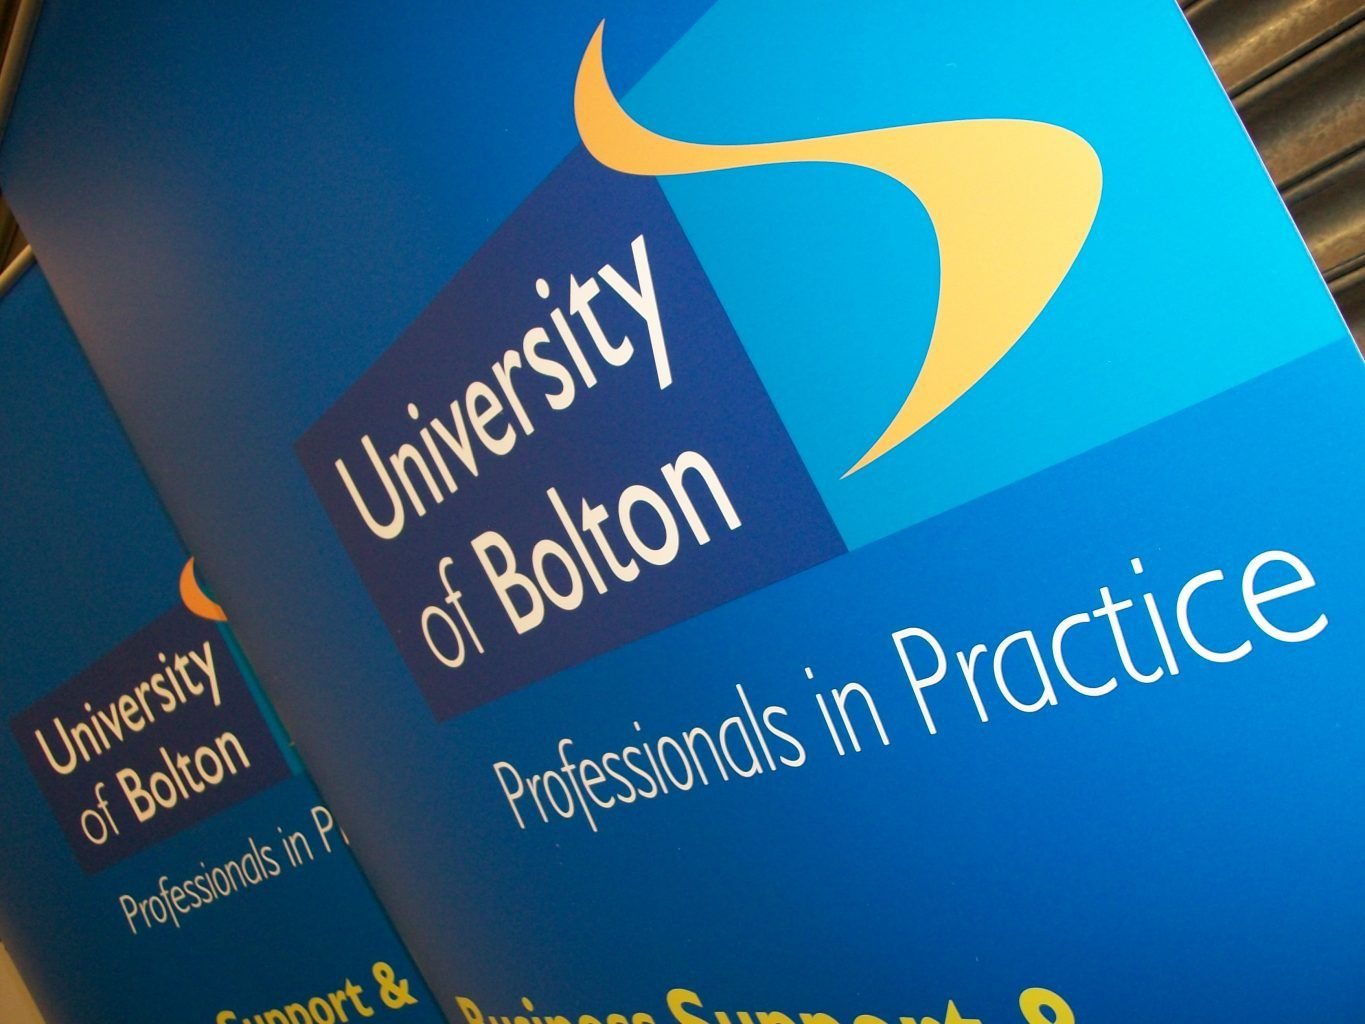 Bolton University Large format printed pop up banners